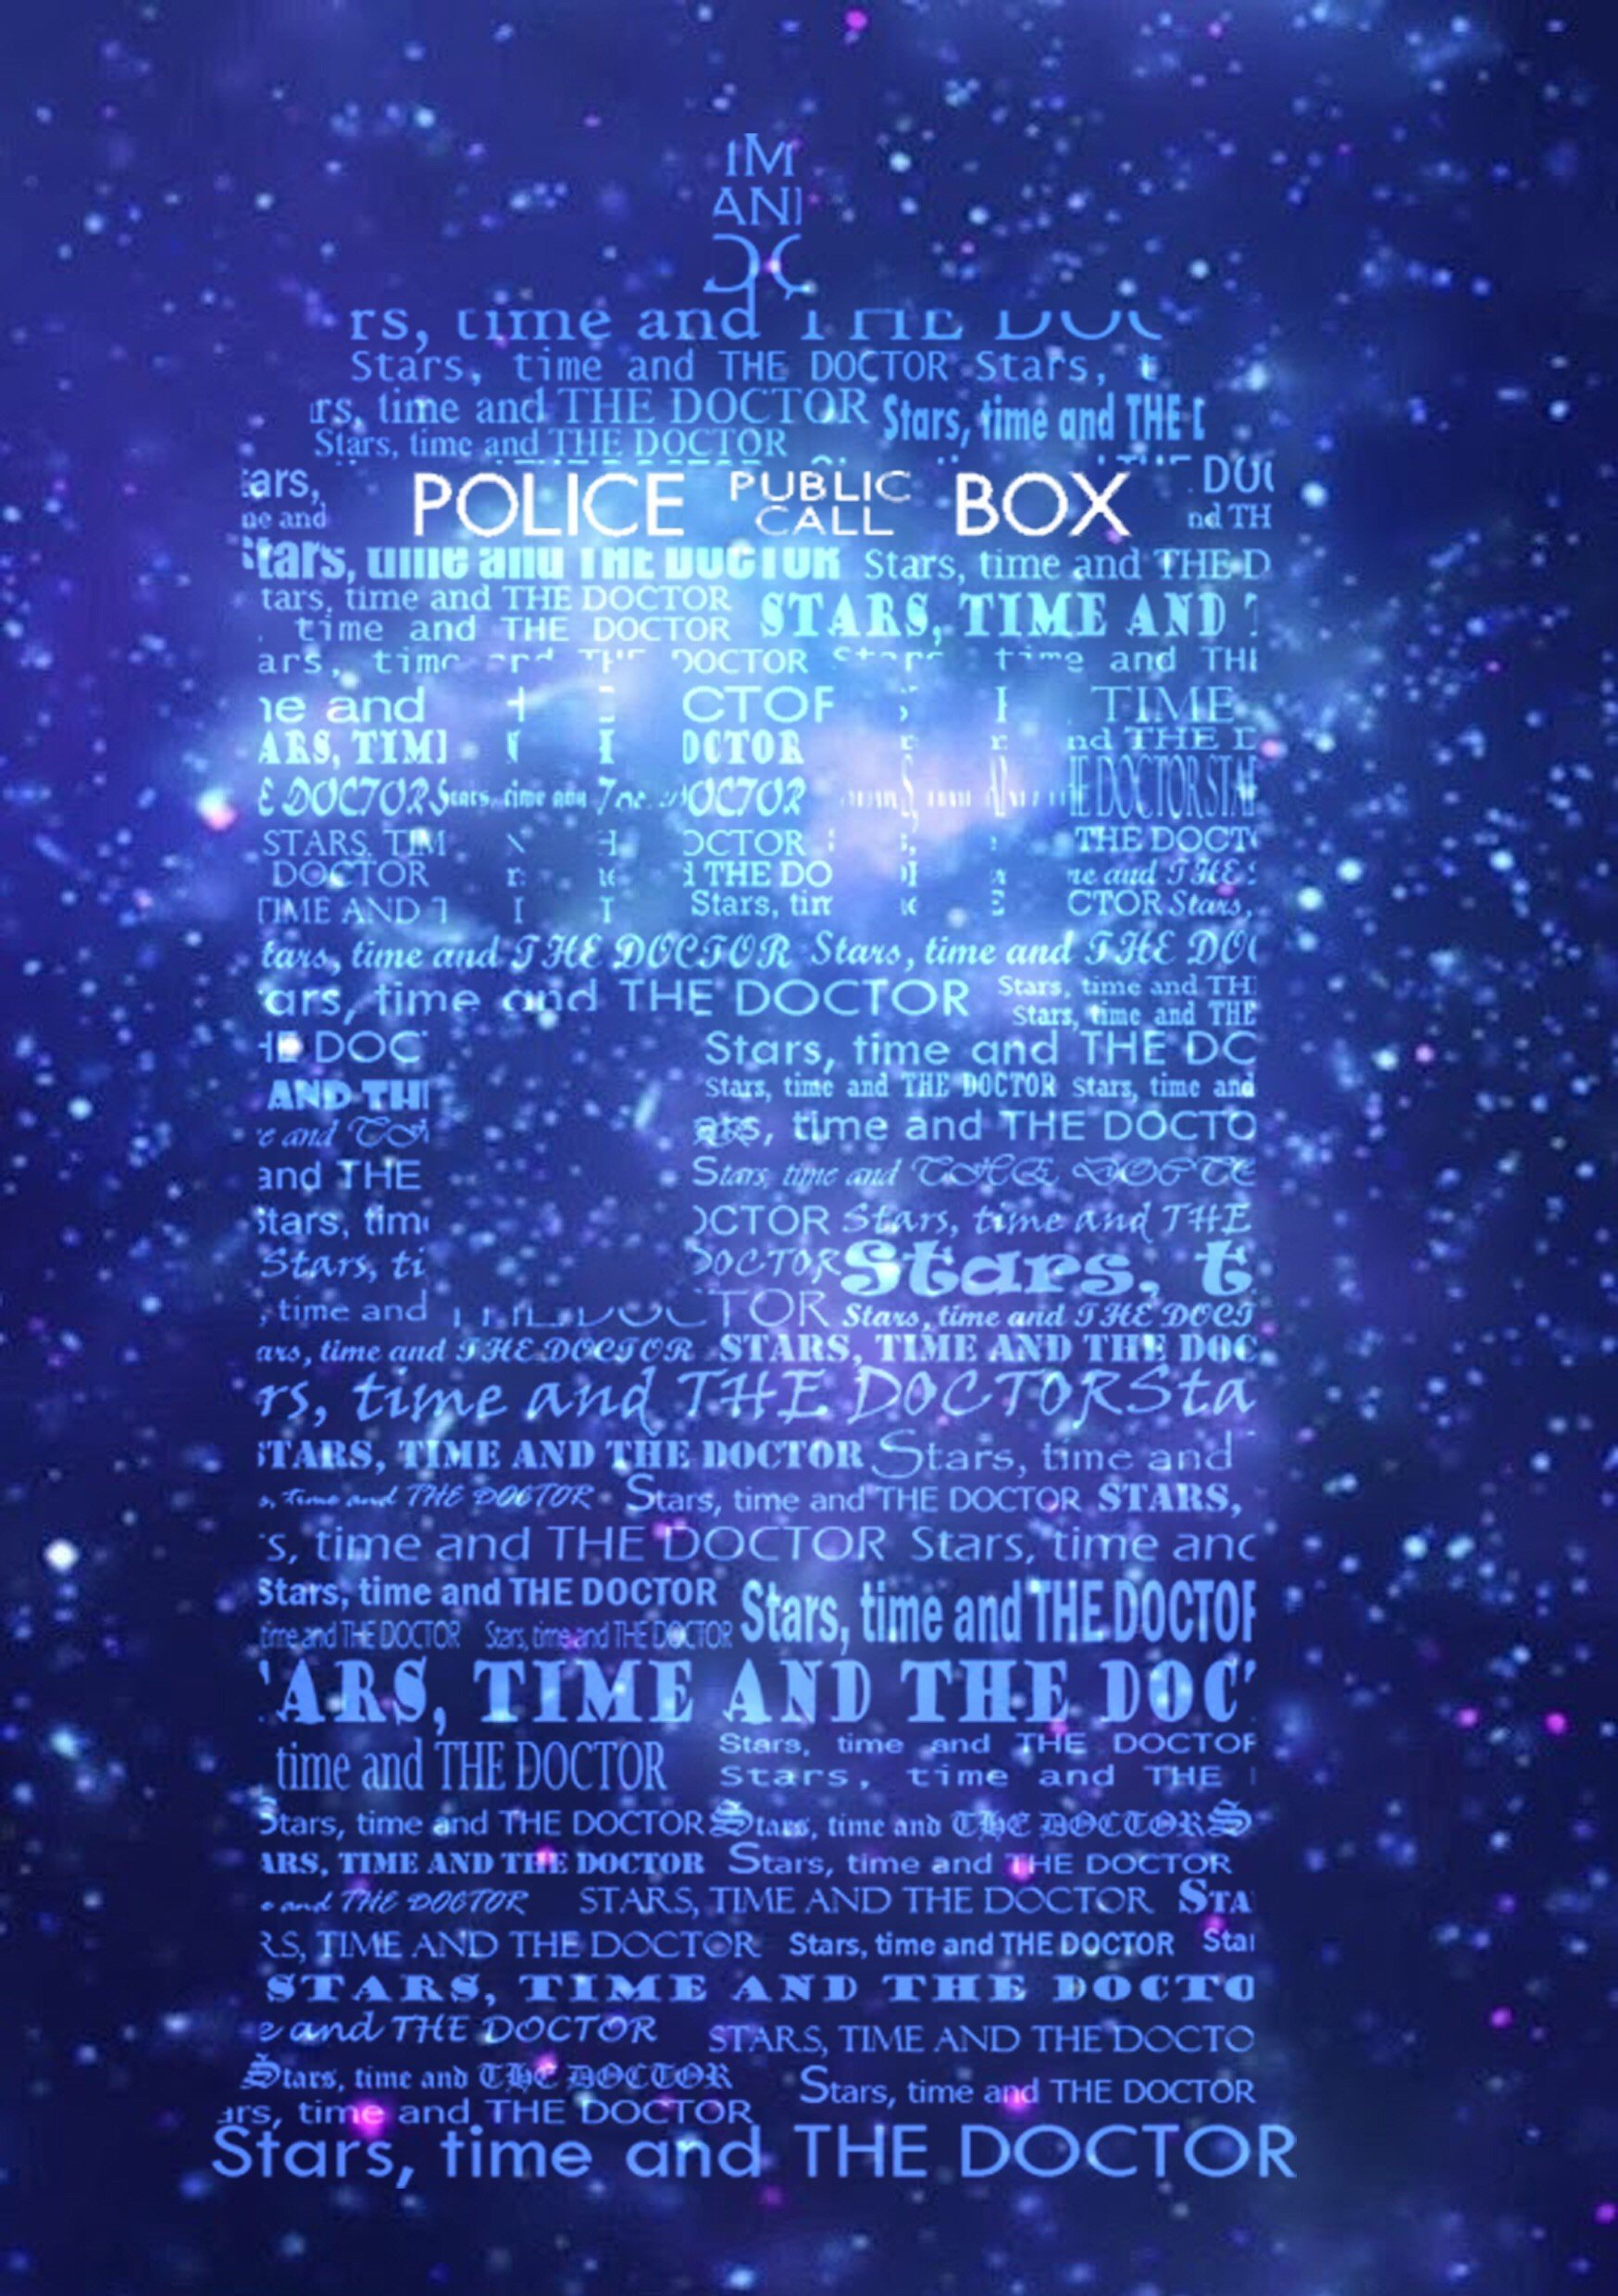 《Stars, time and THE DOCTOR》